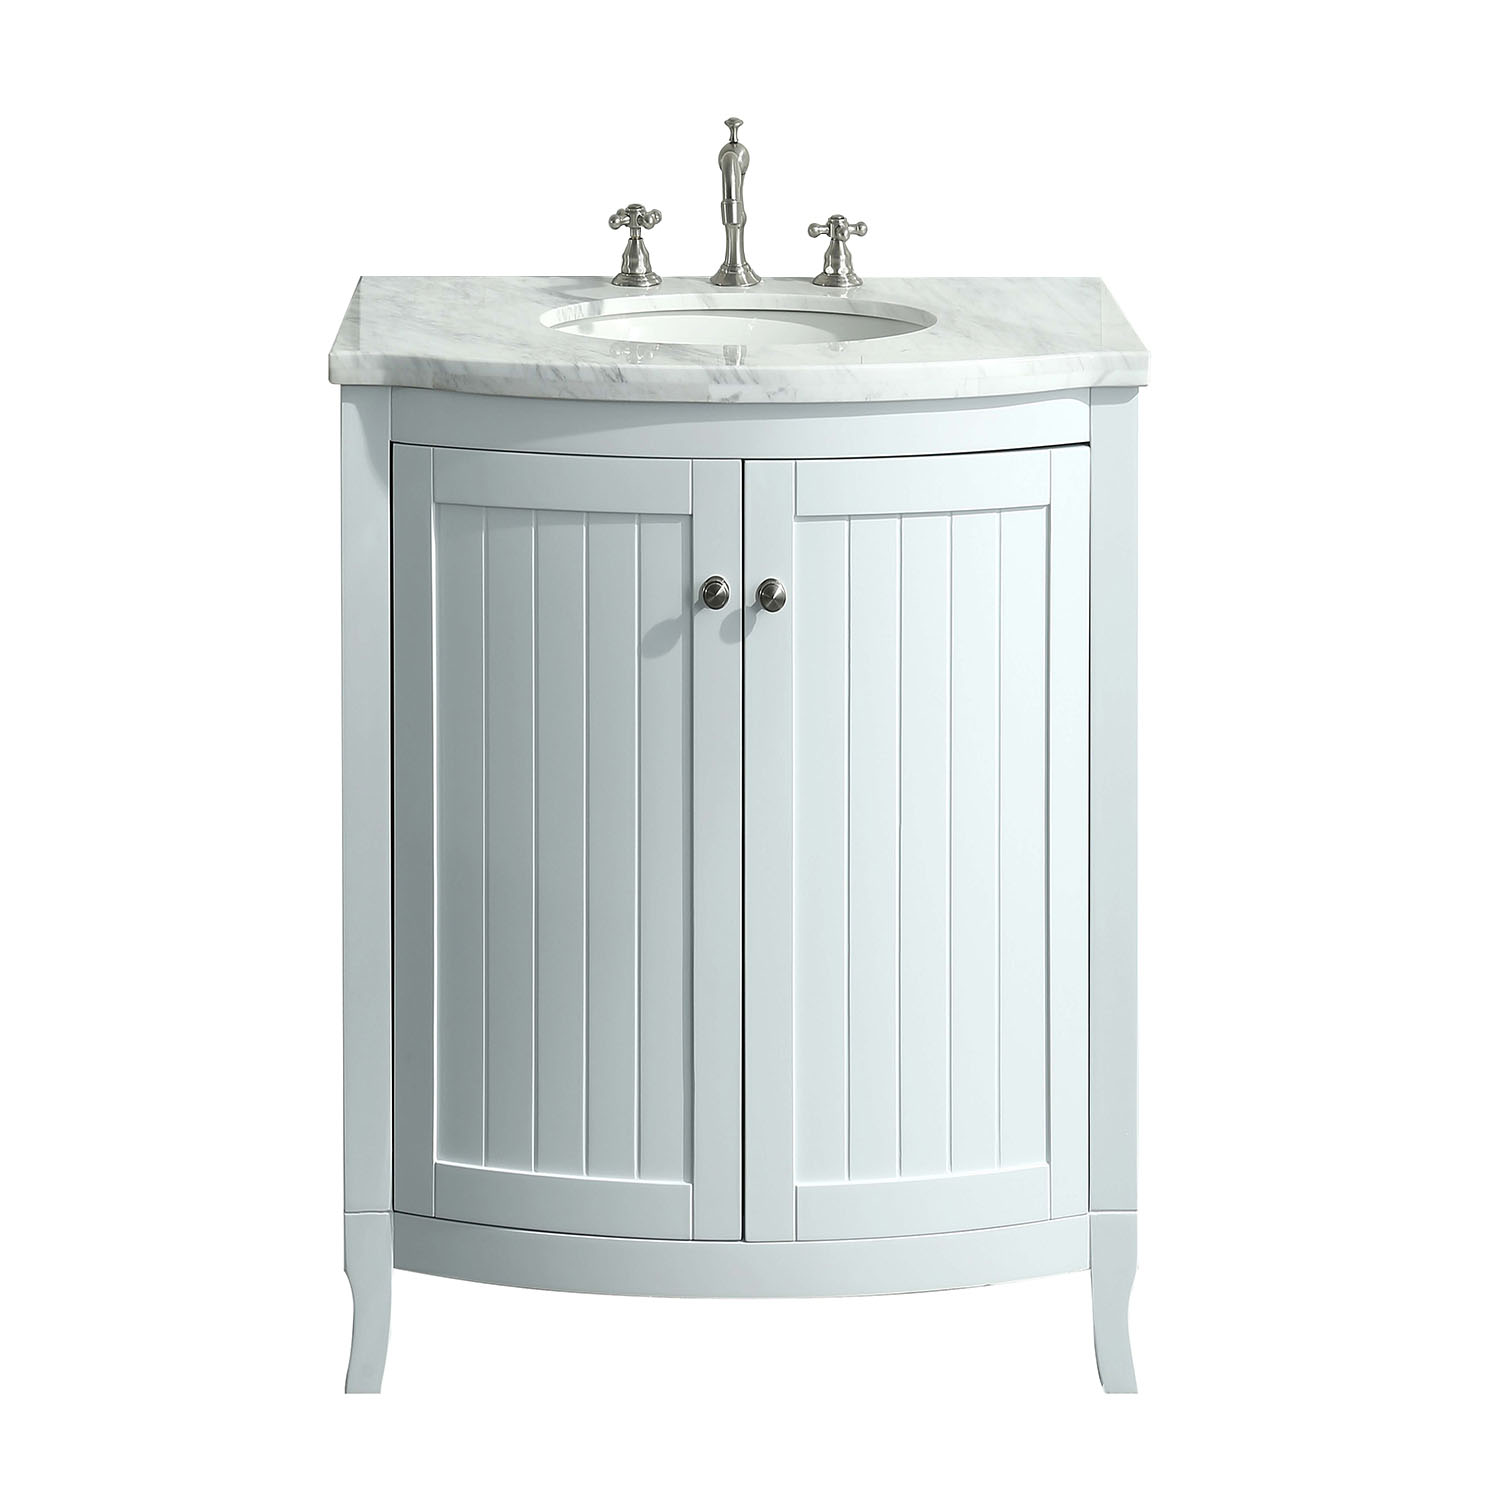 Eviva Odessa Zinx 24 White Bathroom Vanity With Carrera Marble Counter Top And Porcelain Sink